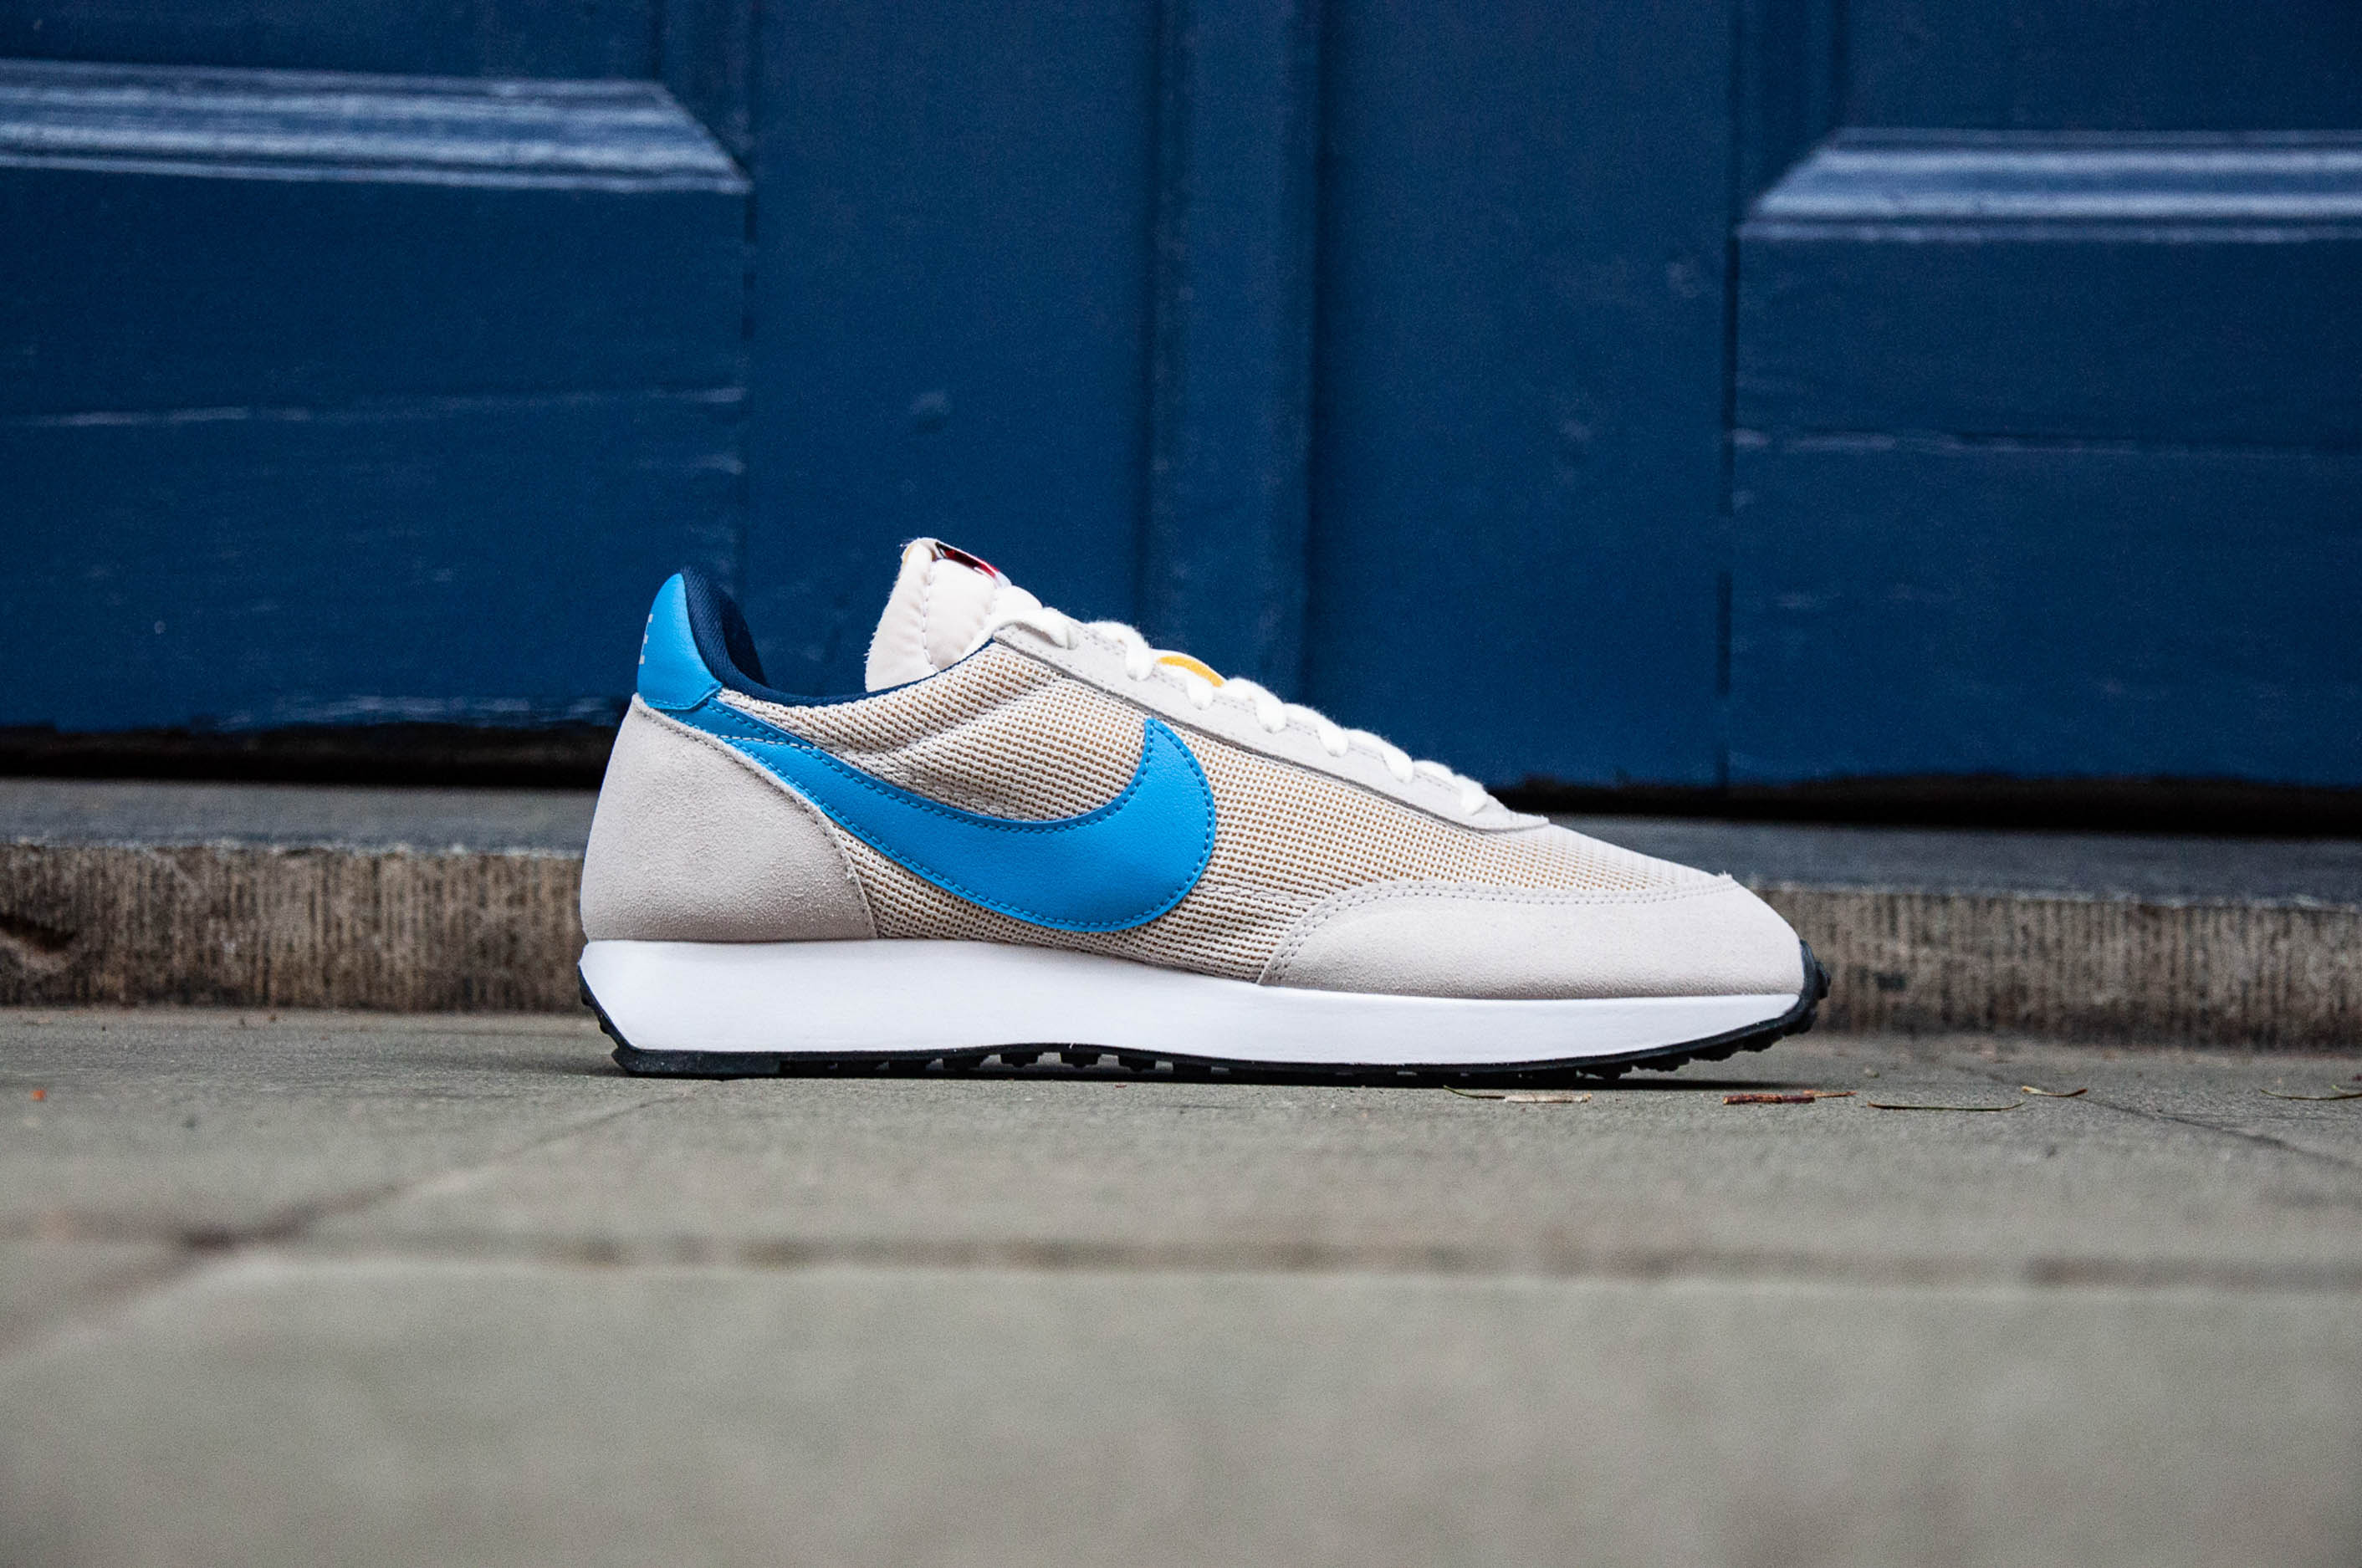 Nike Air Tailwind 79 OG – LA BOITE COLLECTOR